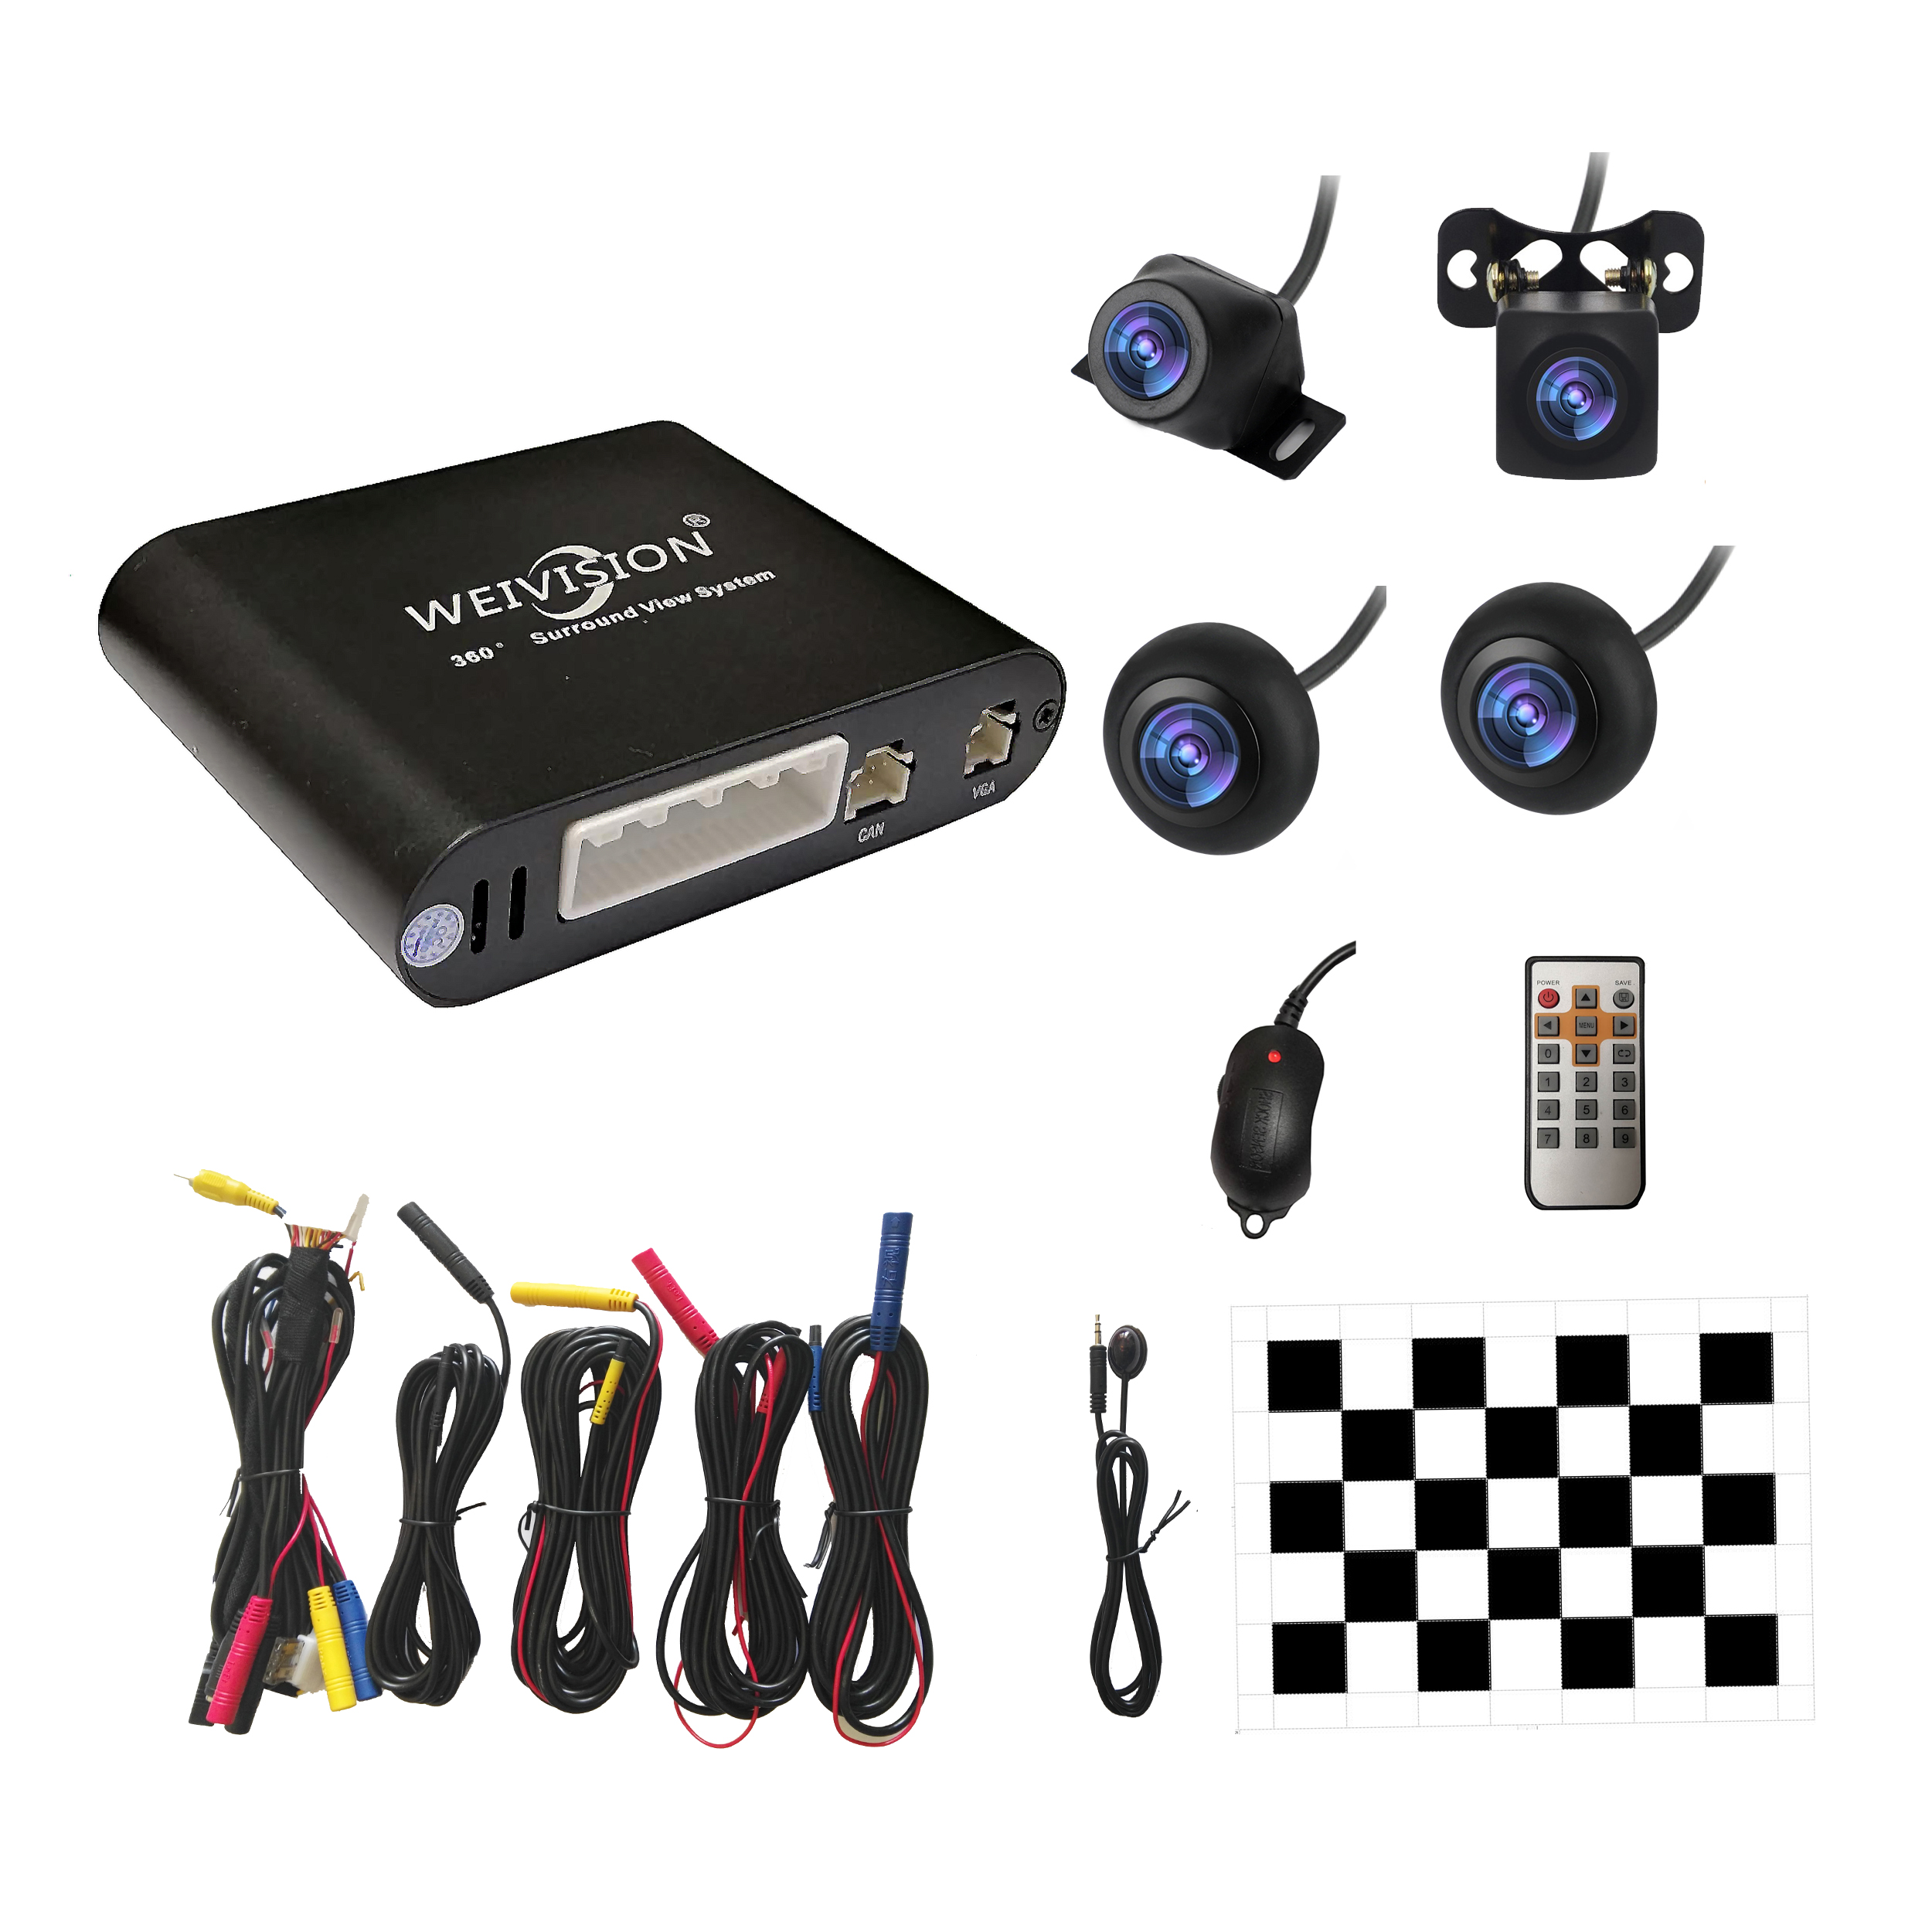 WEIVISION 360 Graden Naadloze Bird View Panorama Systeem, Alle Ronde View Systeem, Rond Parking Auto DVR Opname, Gift 8G U Disk